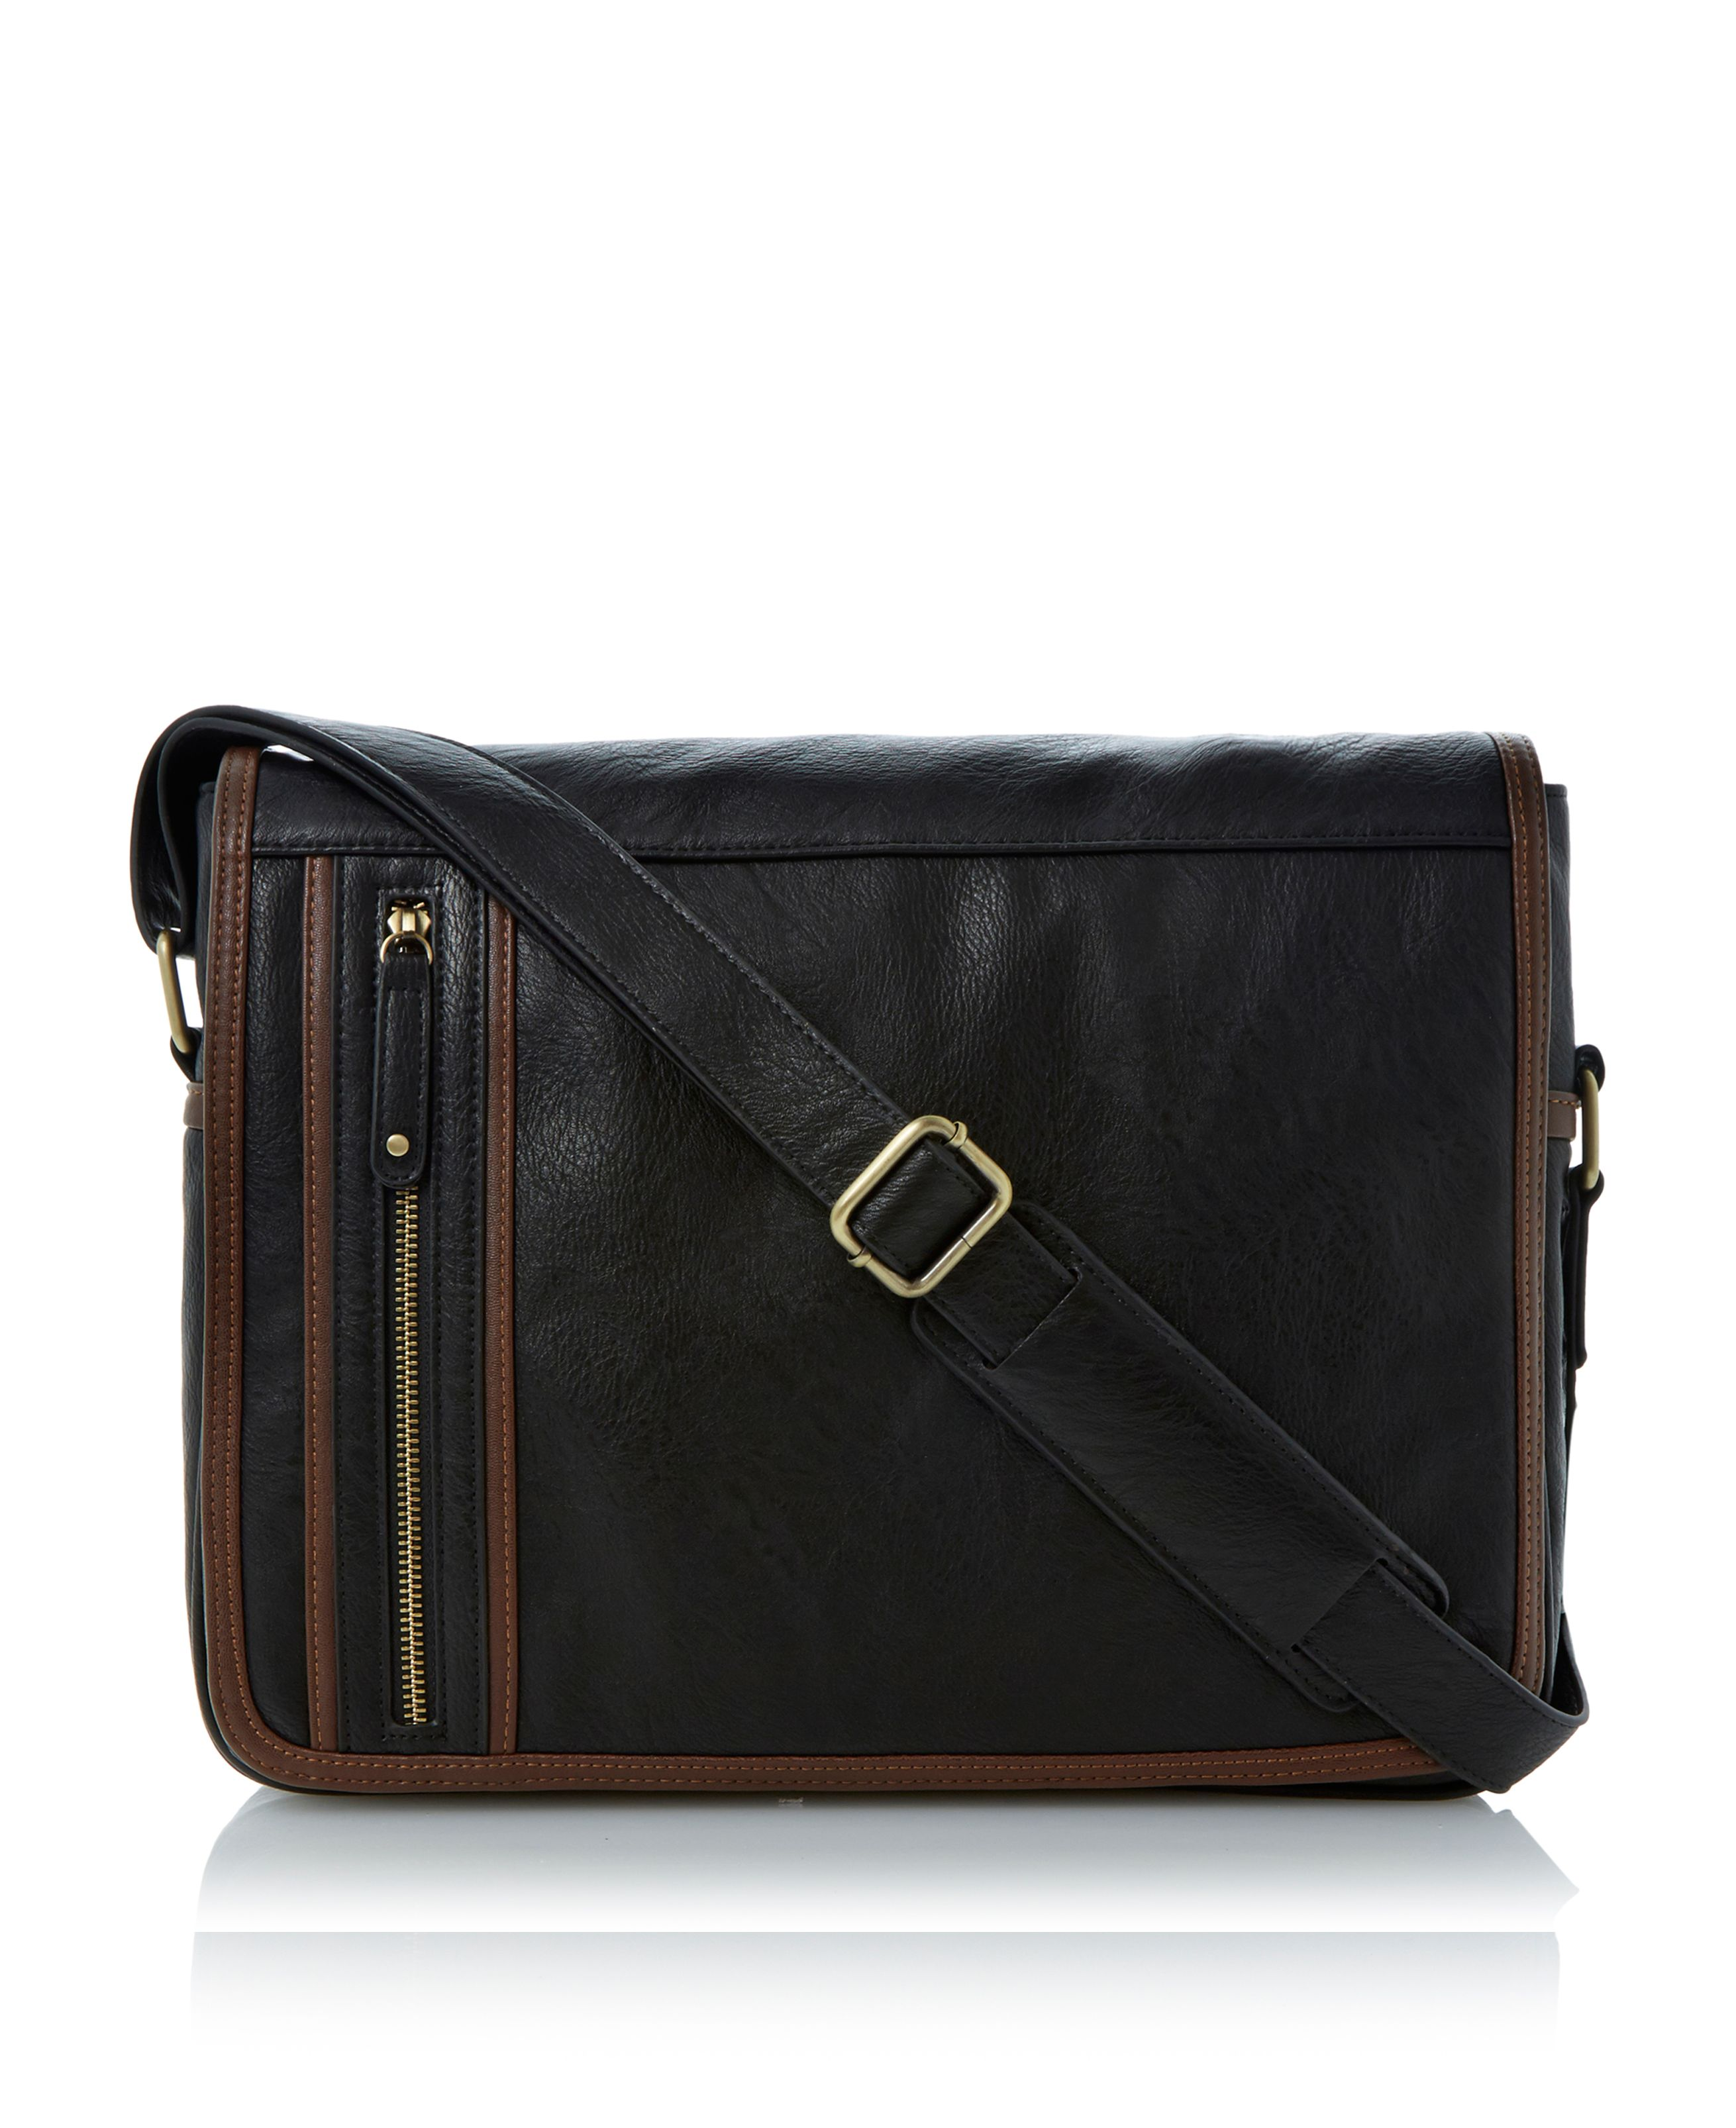 Portlands side zip messenger bag